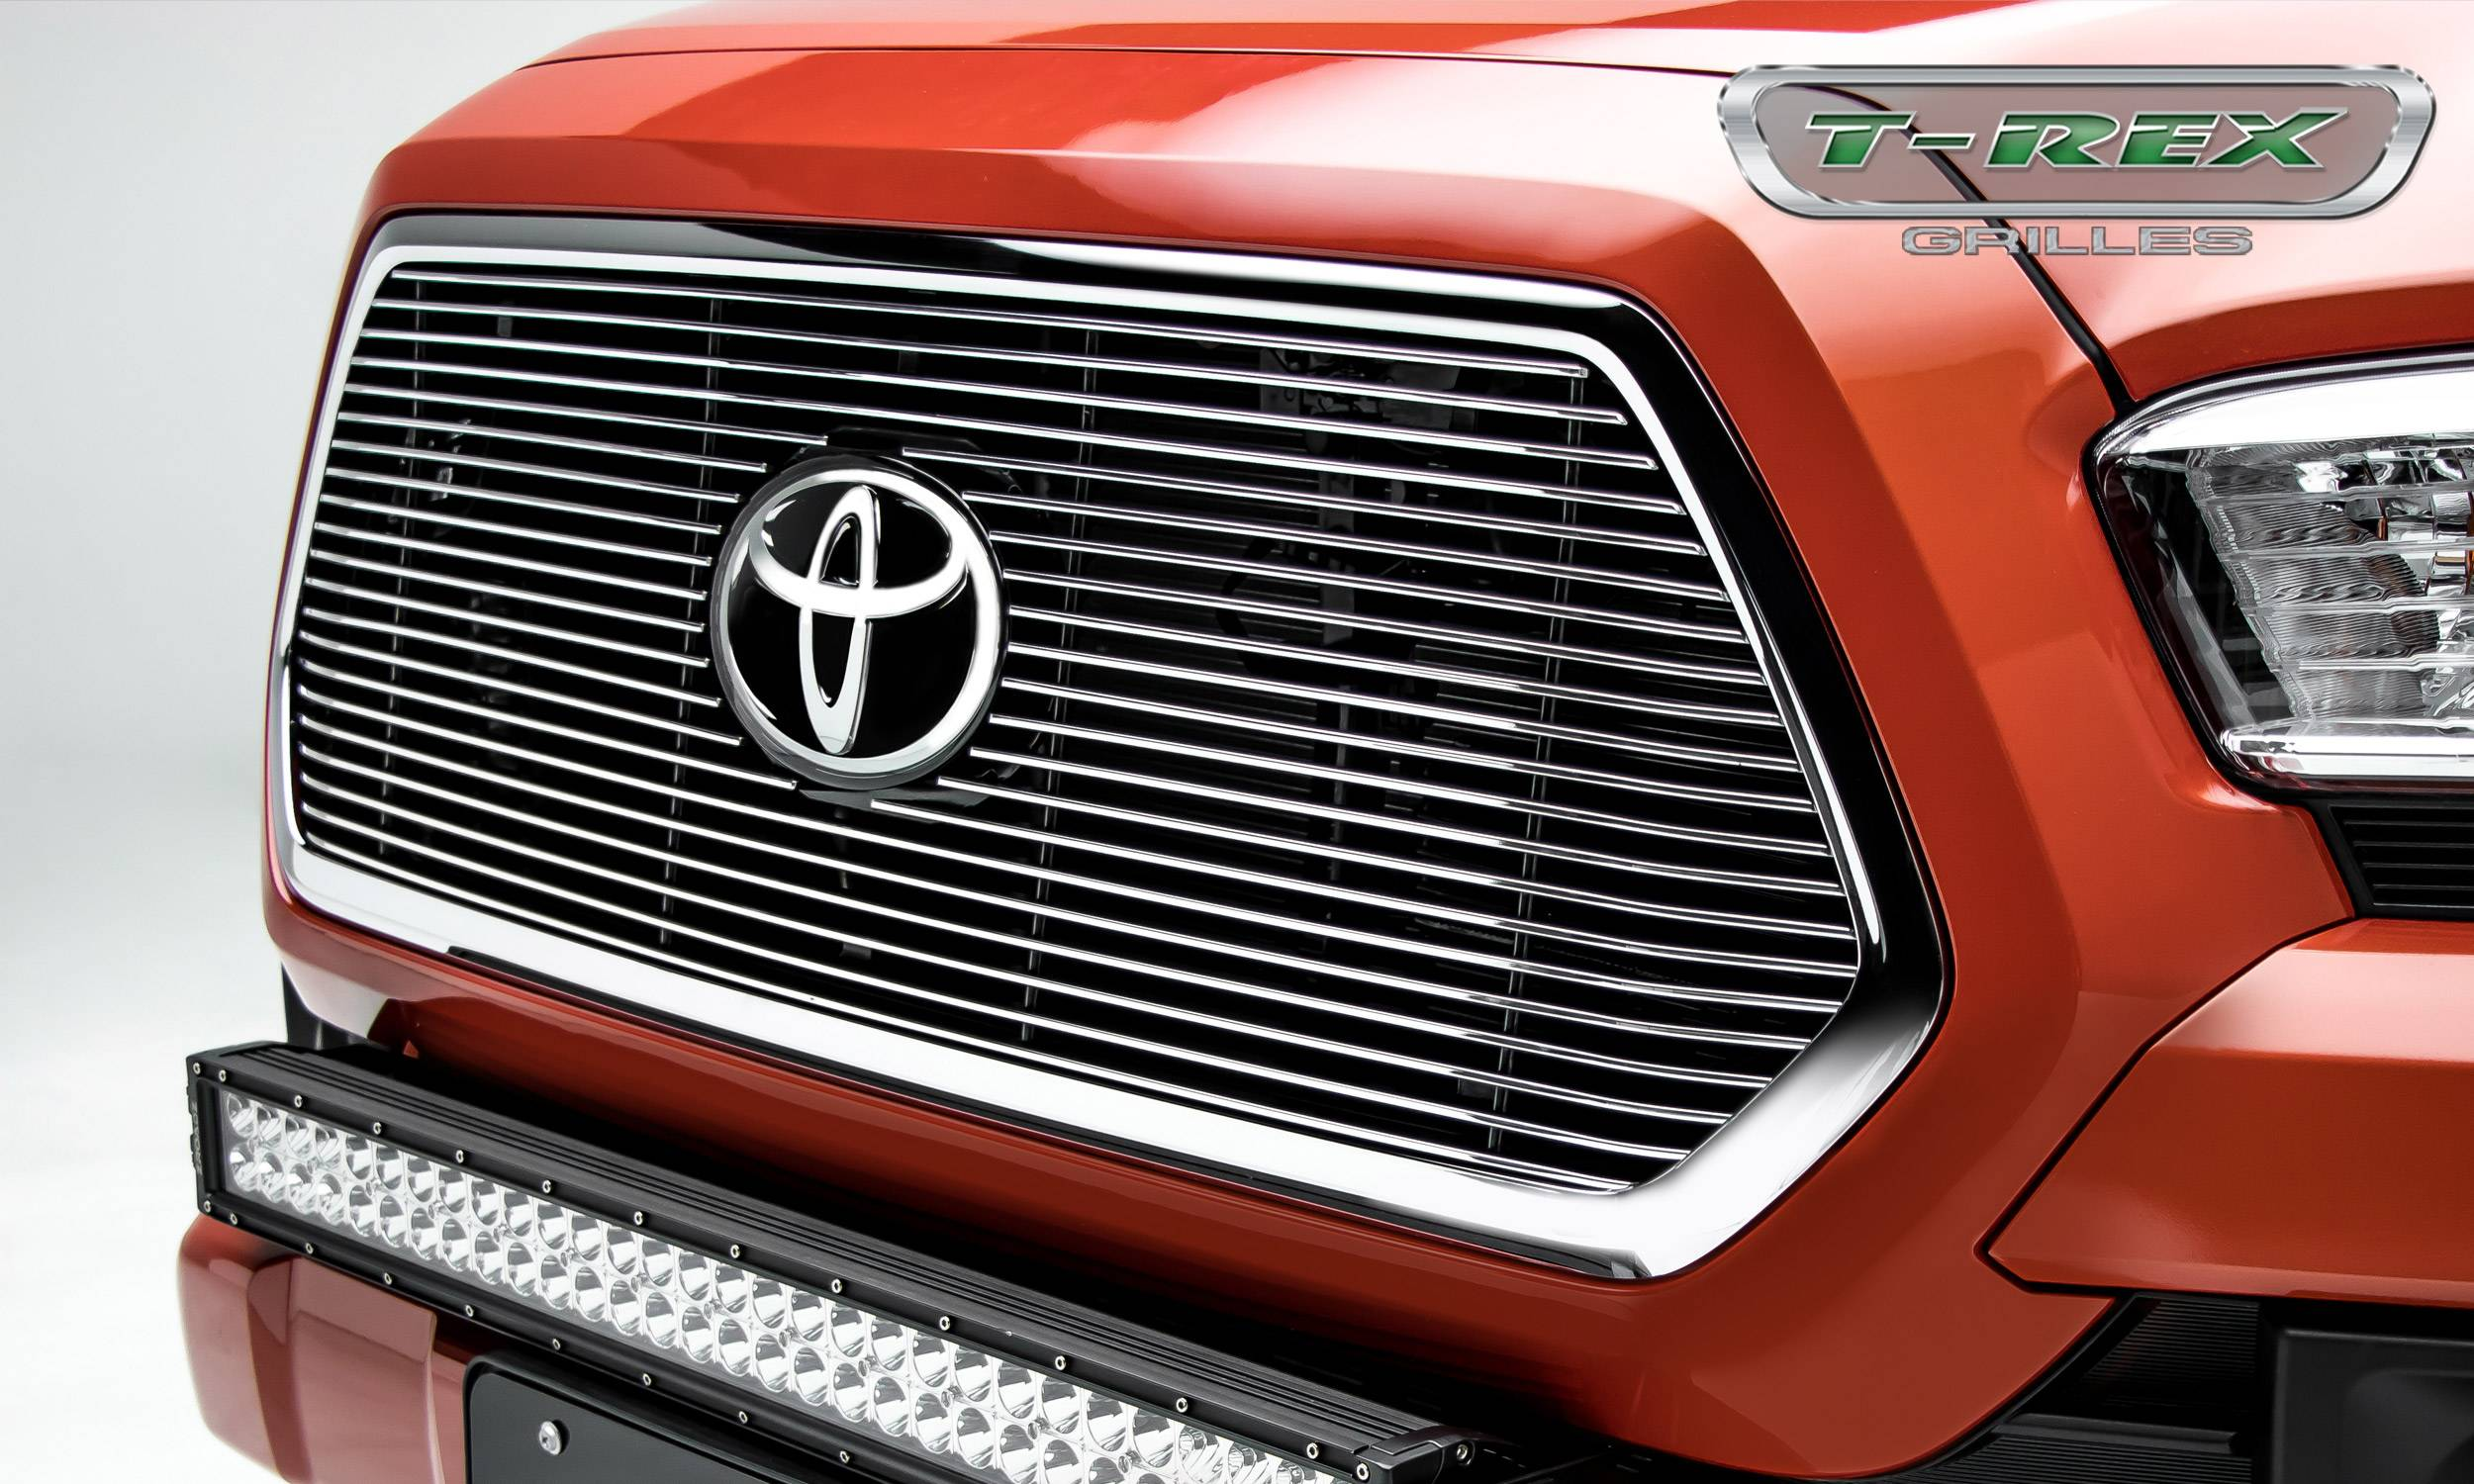 Toyota Tacoma - BILLET Series - Main Insert - Grille - Polished - Accepts factory TSS logo - Part# 20950